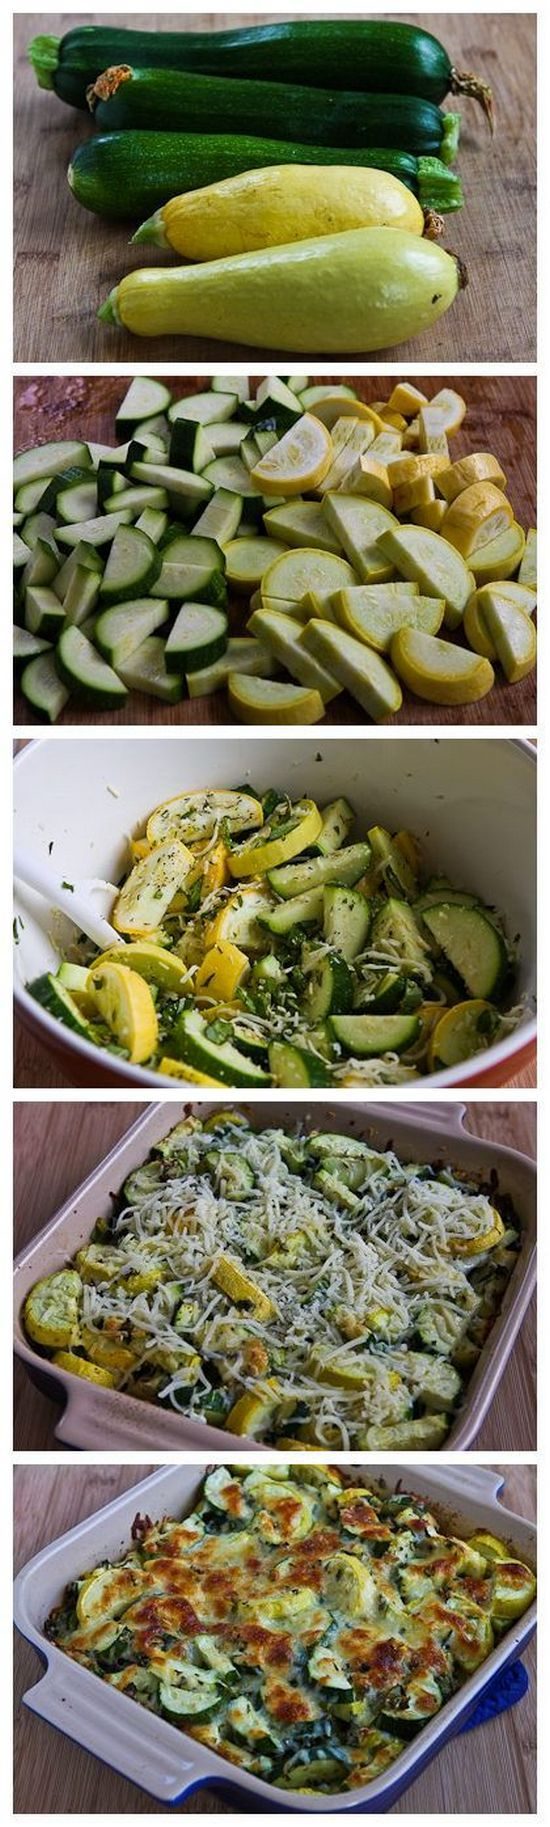 Easy Cheesy Zucchini Bake (Low-Carb, Gluten-Free) | Cookboum